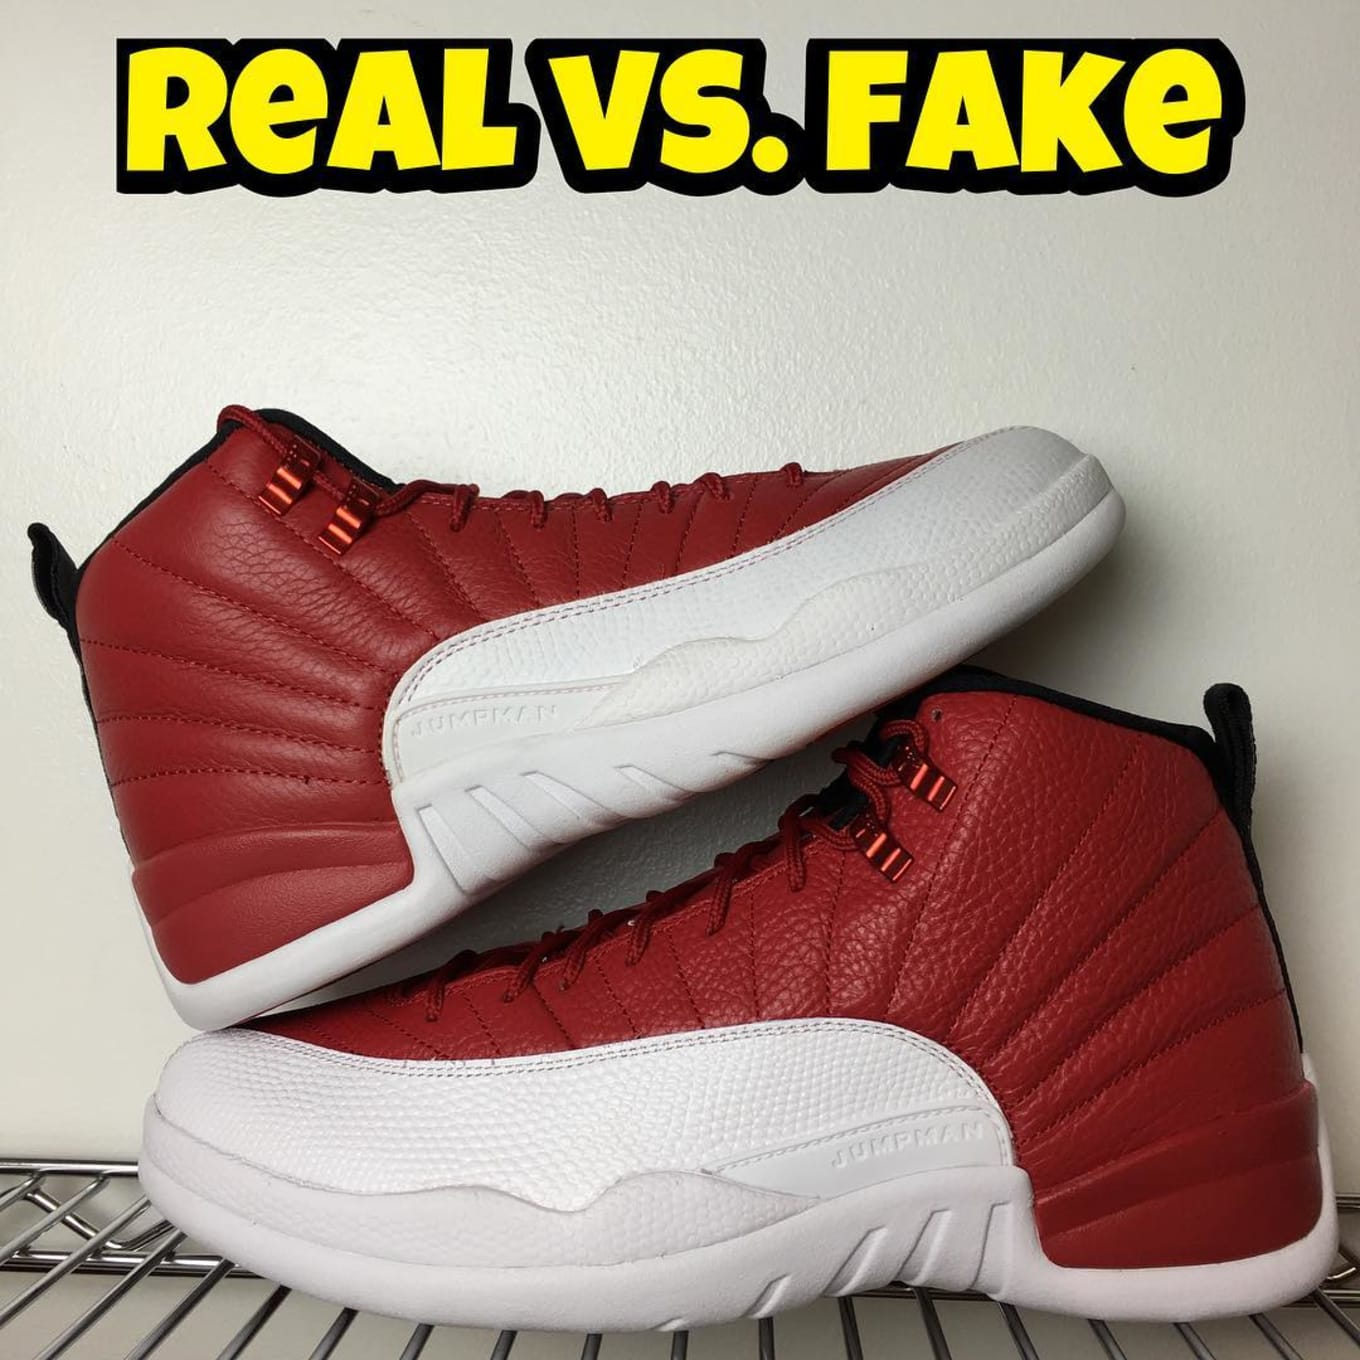 buy popular 3ecac ae5f3 Air Jordan XII 12 Gym Red Real Fake Legit Check